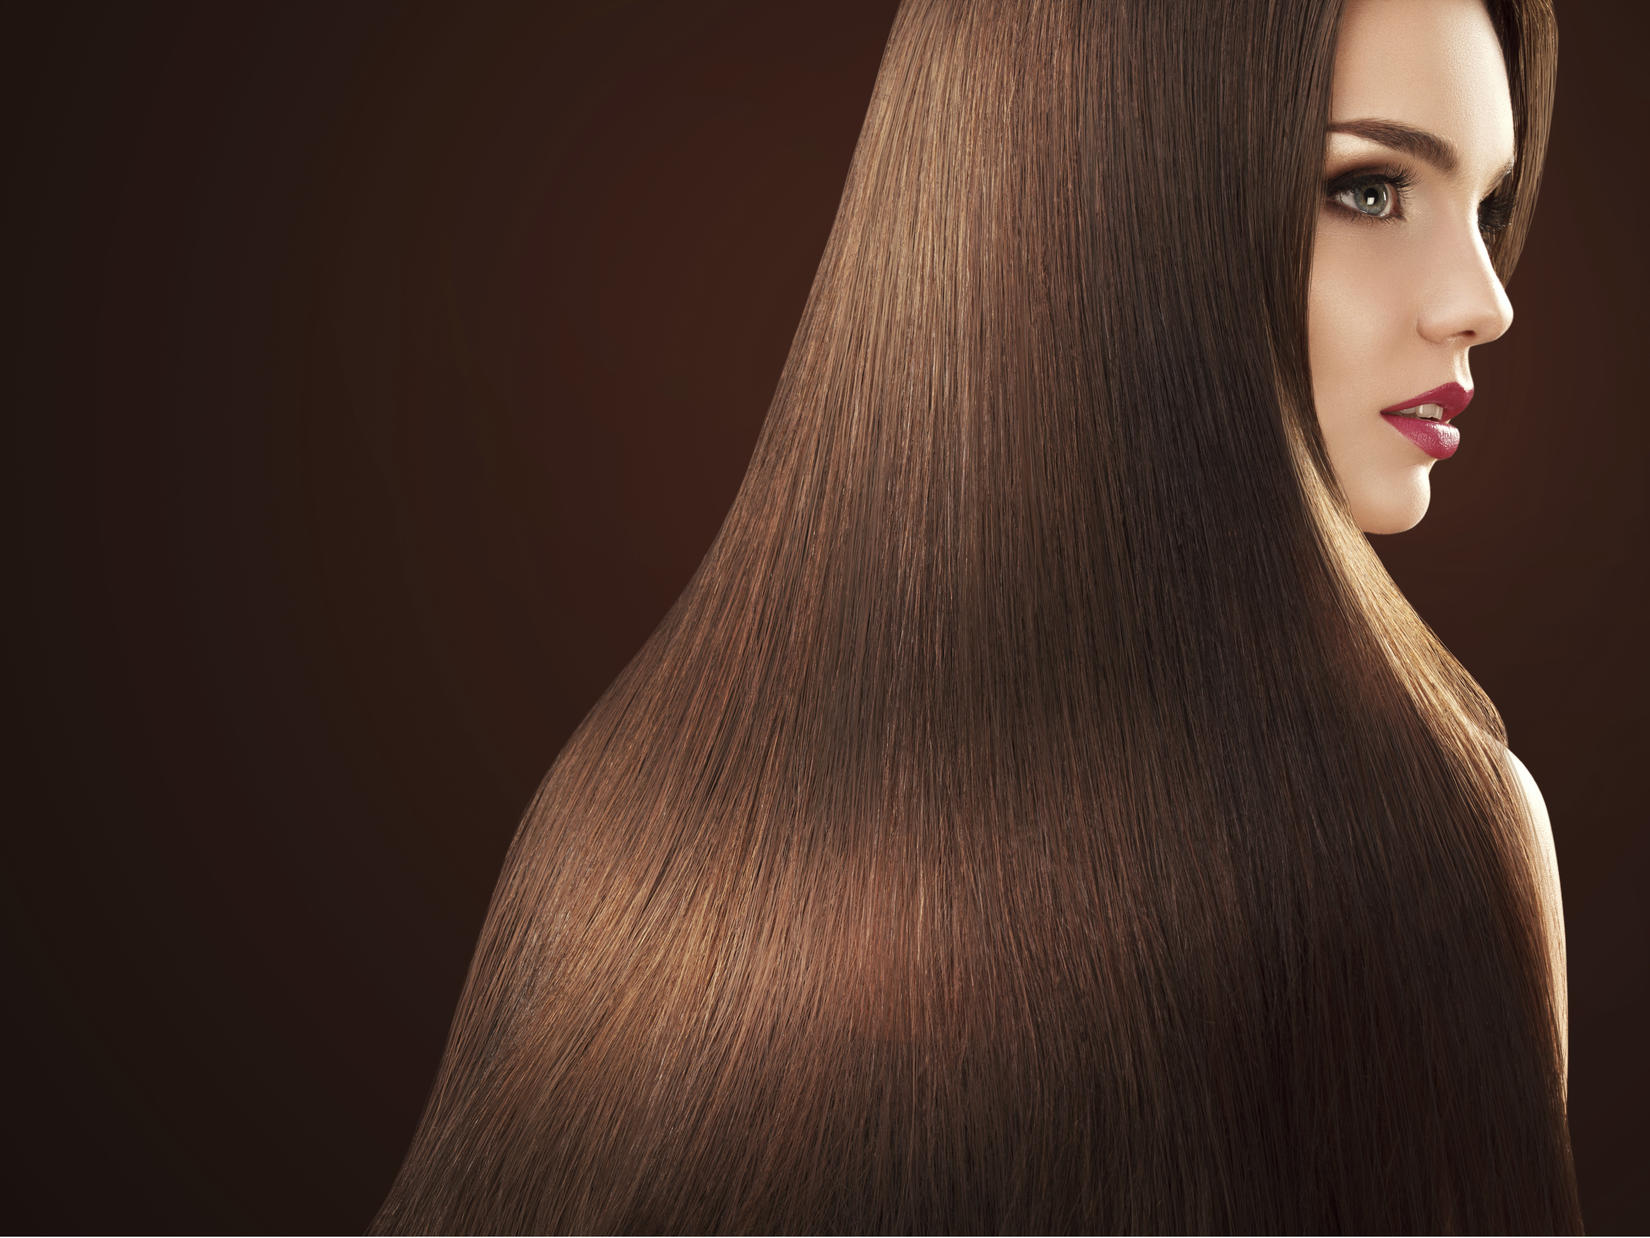 Hair Salons Coupons Deals Near Oshkosh Wi Localsaver